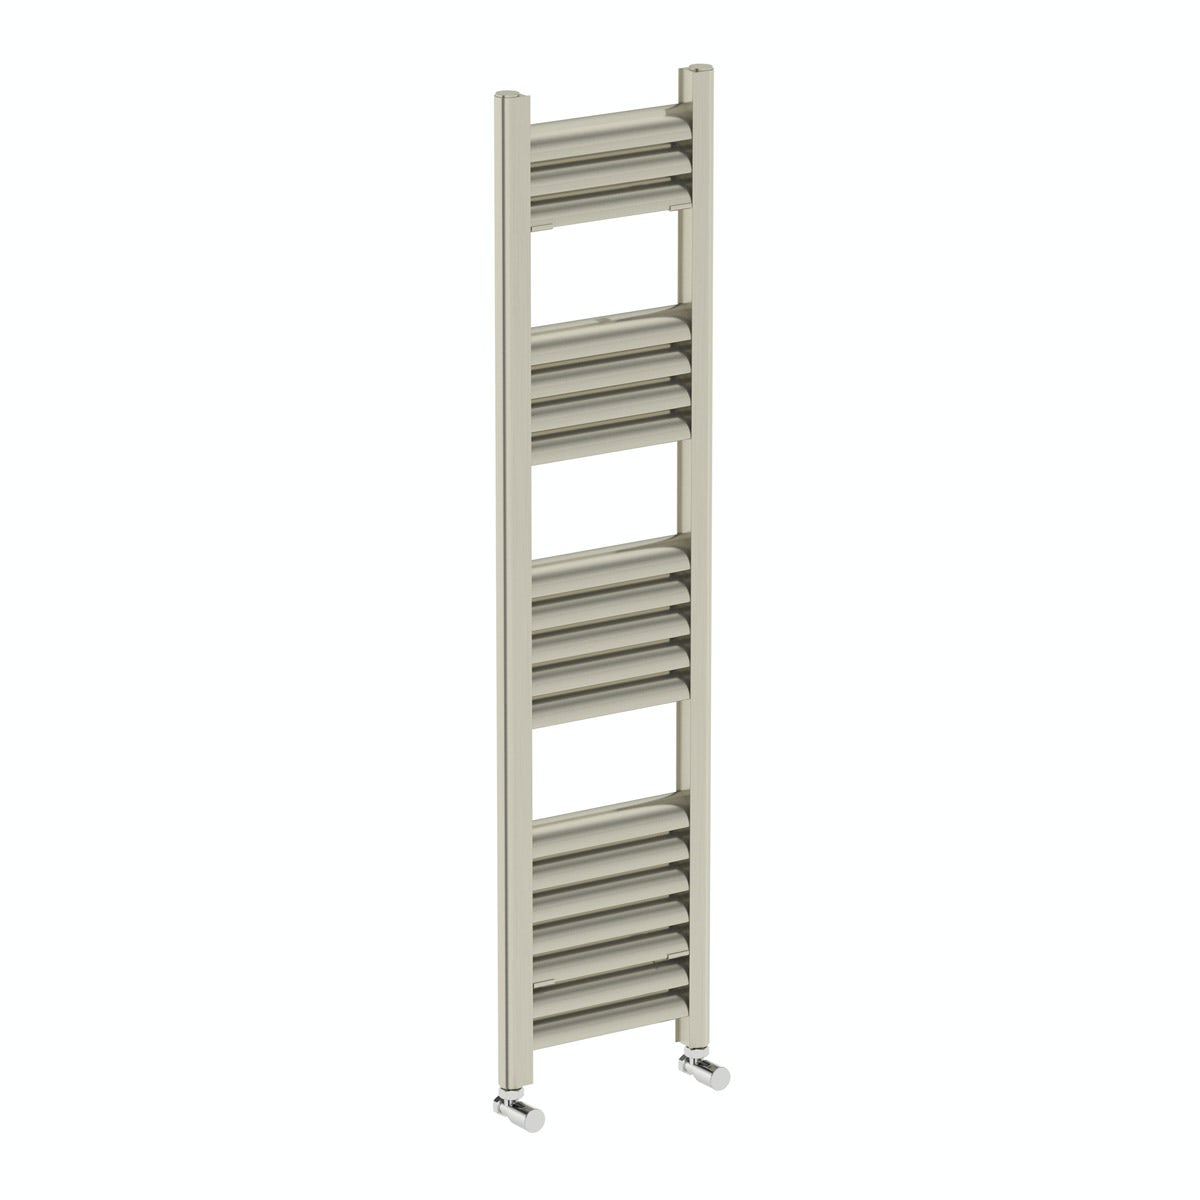 Mode Carter heated towel rail 1200 x 300